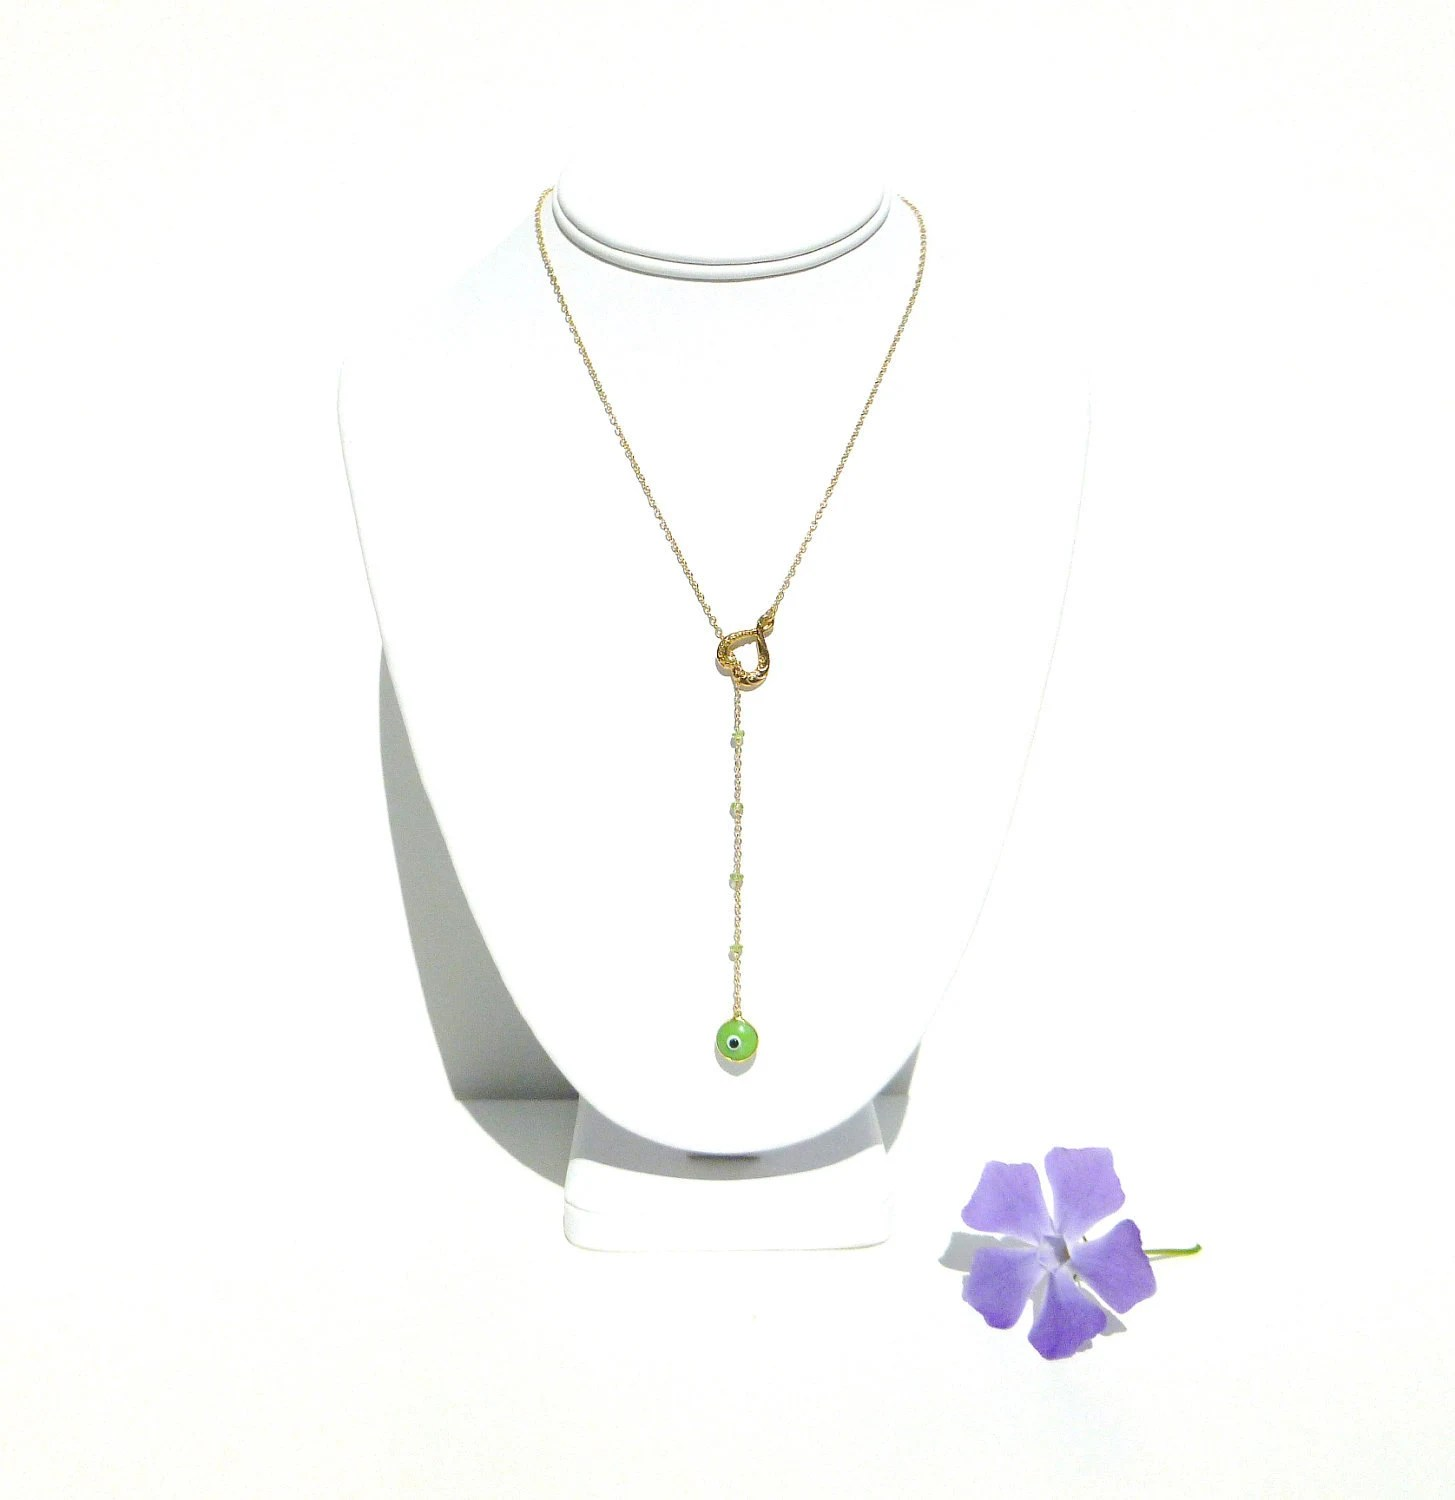 Evil Eye Necklace Gold Filled with Peridot and Heart Charm